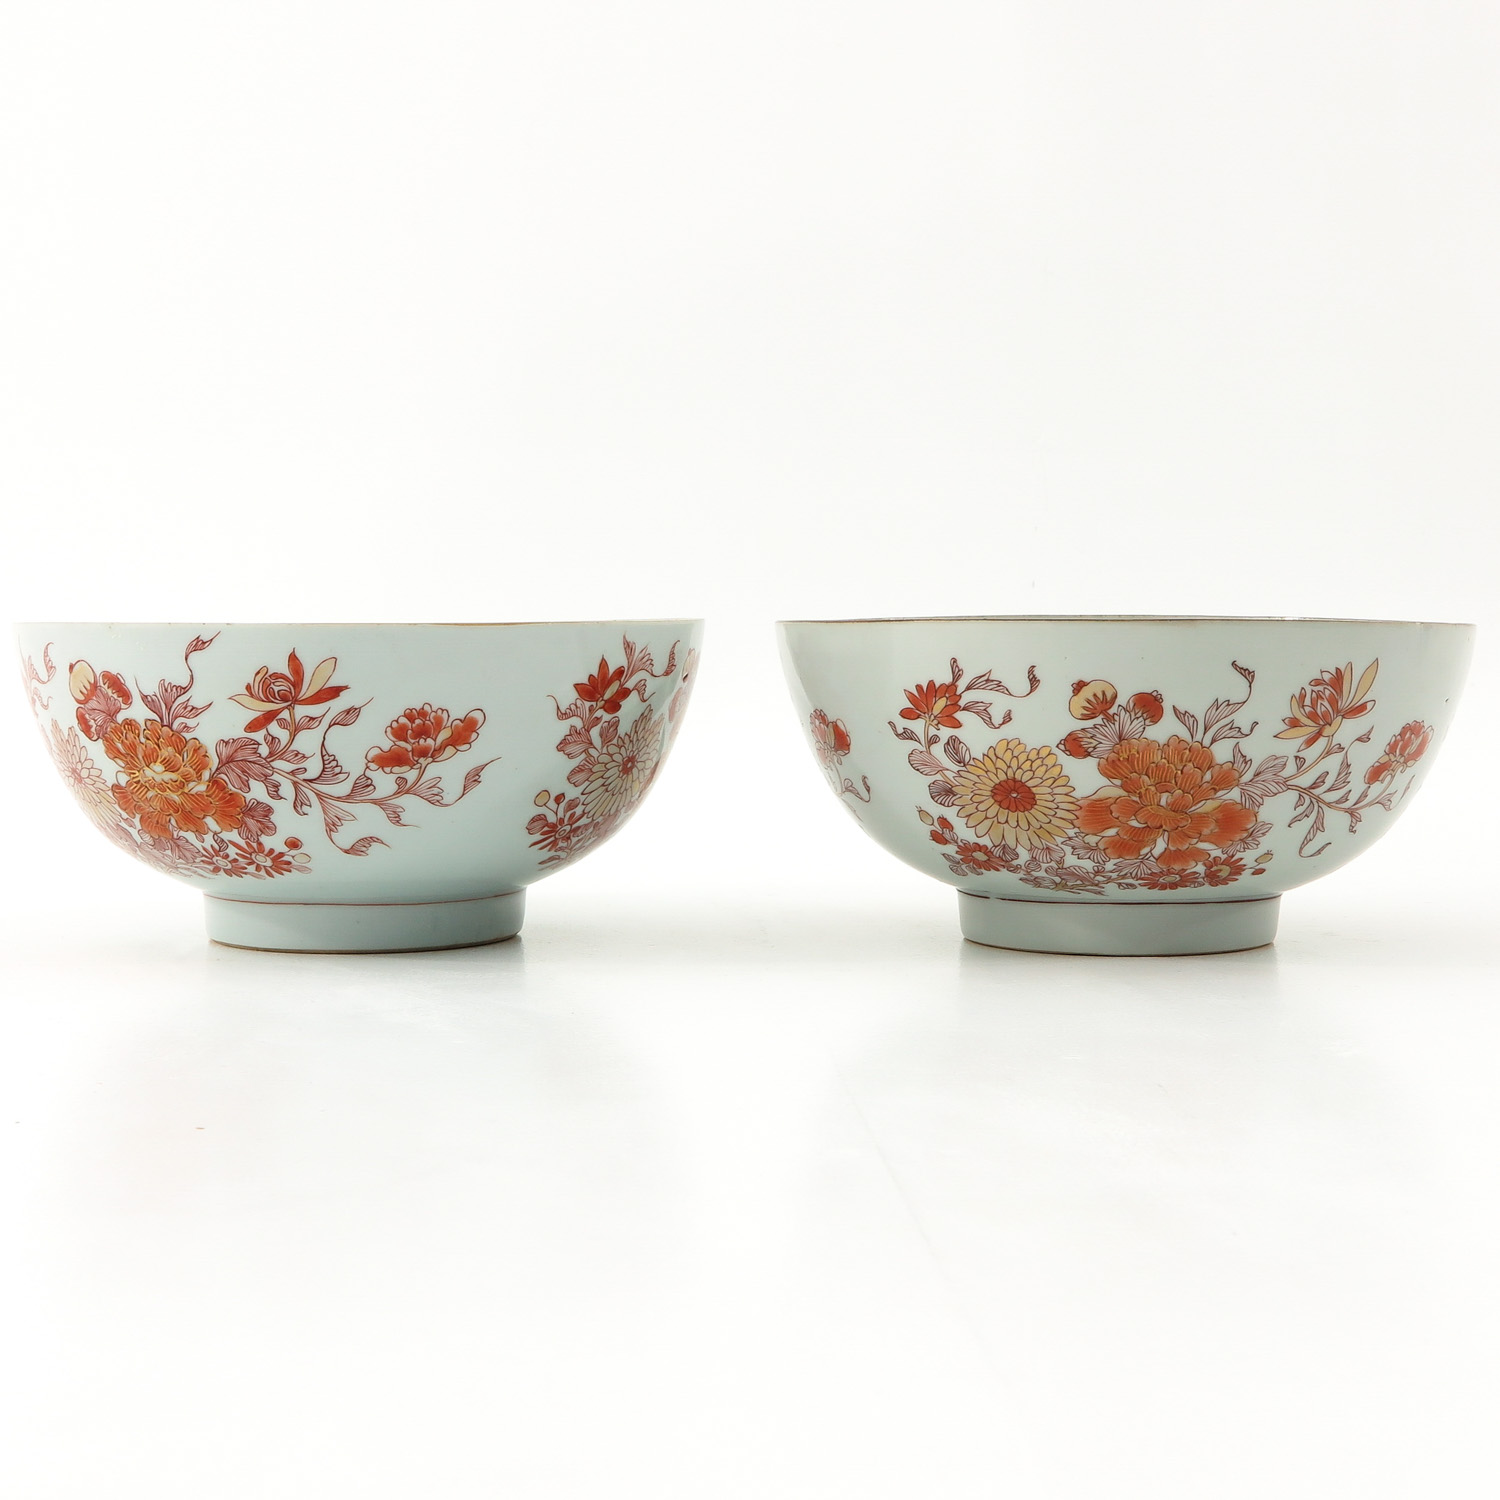 A Pair of Milk and Blood Decor Bowls - Image 4 of 9